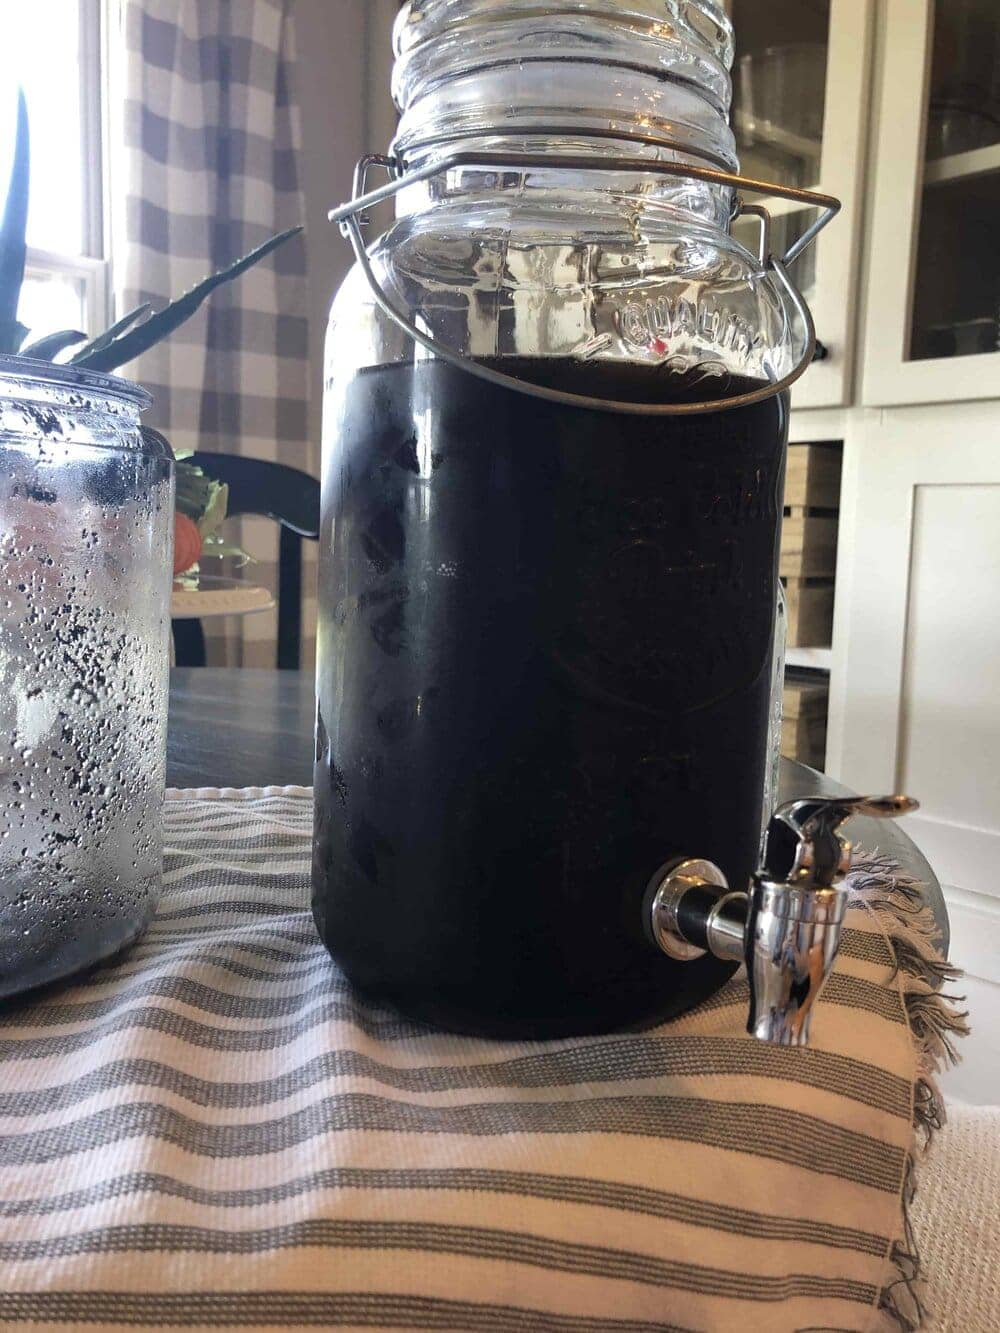 Missouri Girl Cold Brewed Coffee. See how cold brew coffee is made and the benefits cold brew coffee has over regular coffee. Missouri Girl Blog.